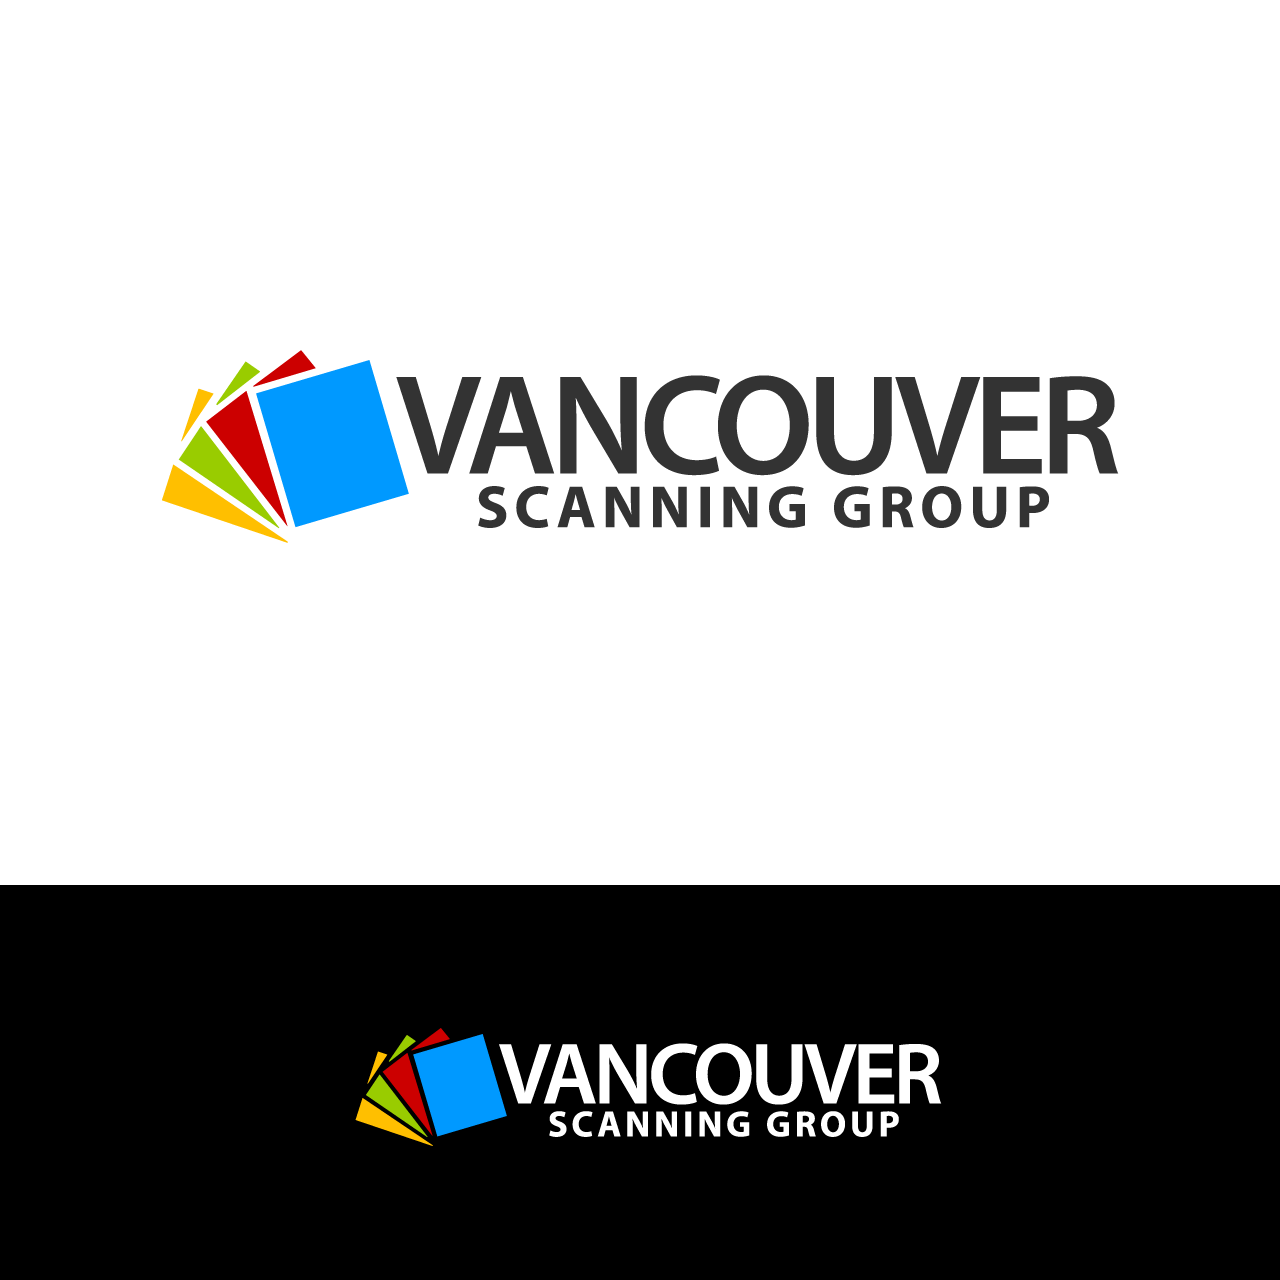 Logo Design by umxca - Entry No. 116 in the Logo Design Contest Vancouver Scanning Group.